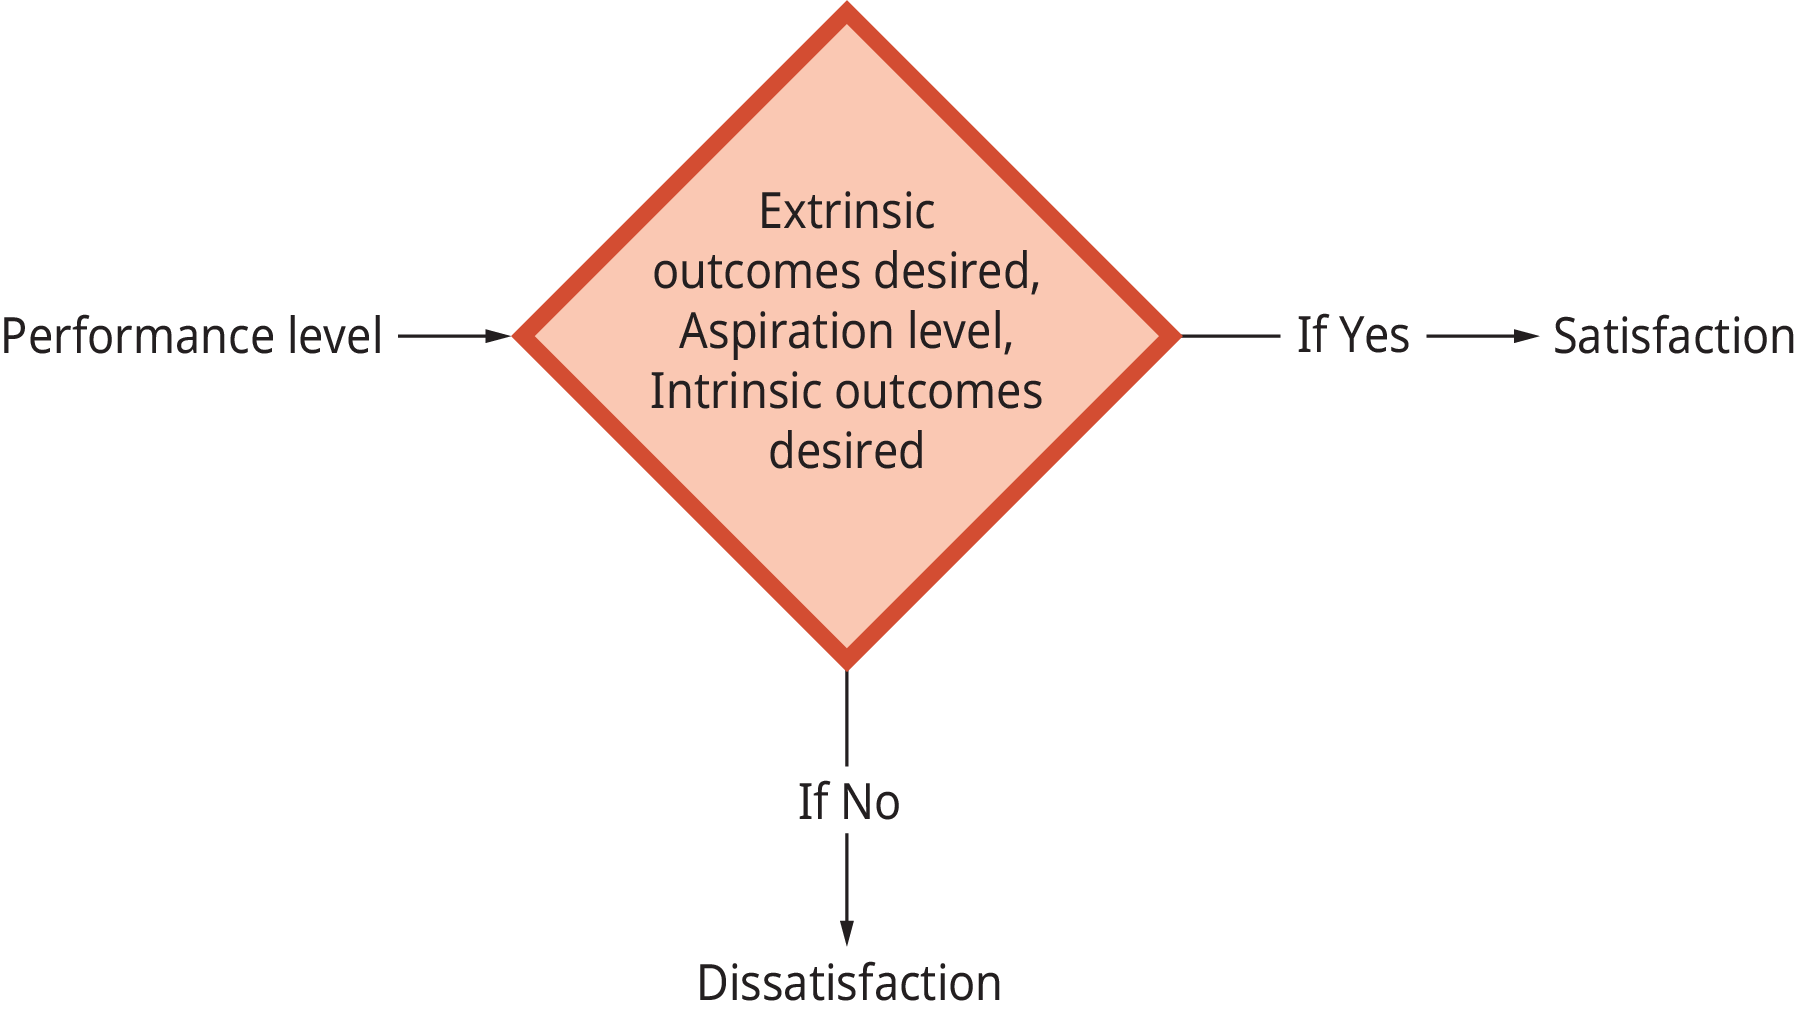 A diagram illustrates how performance level determines job satisfaction.